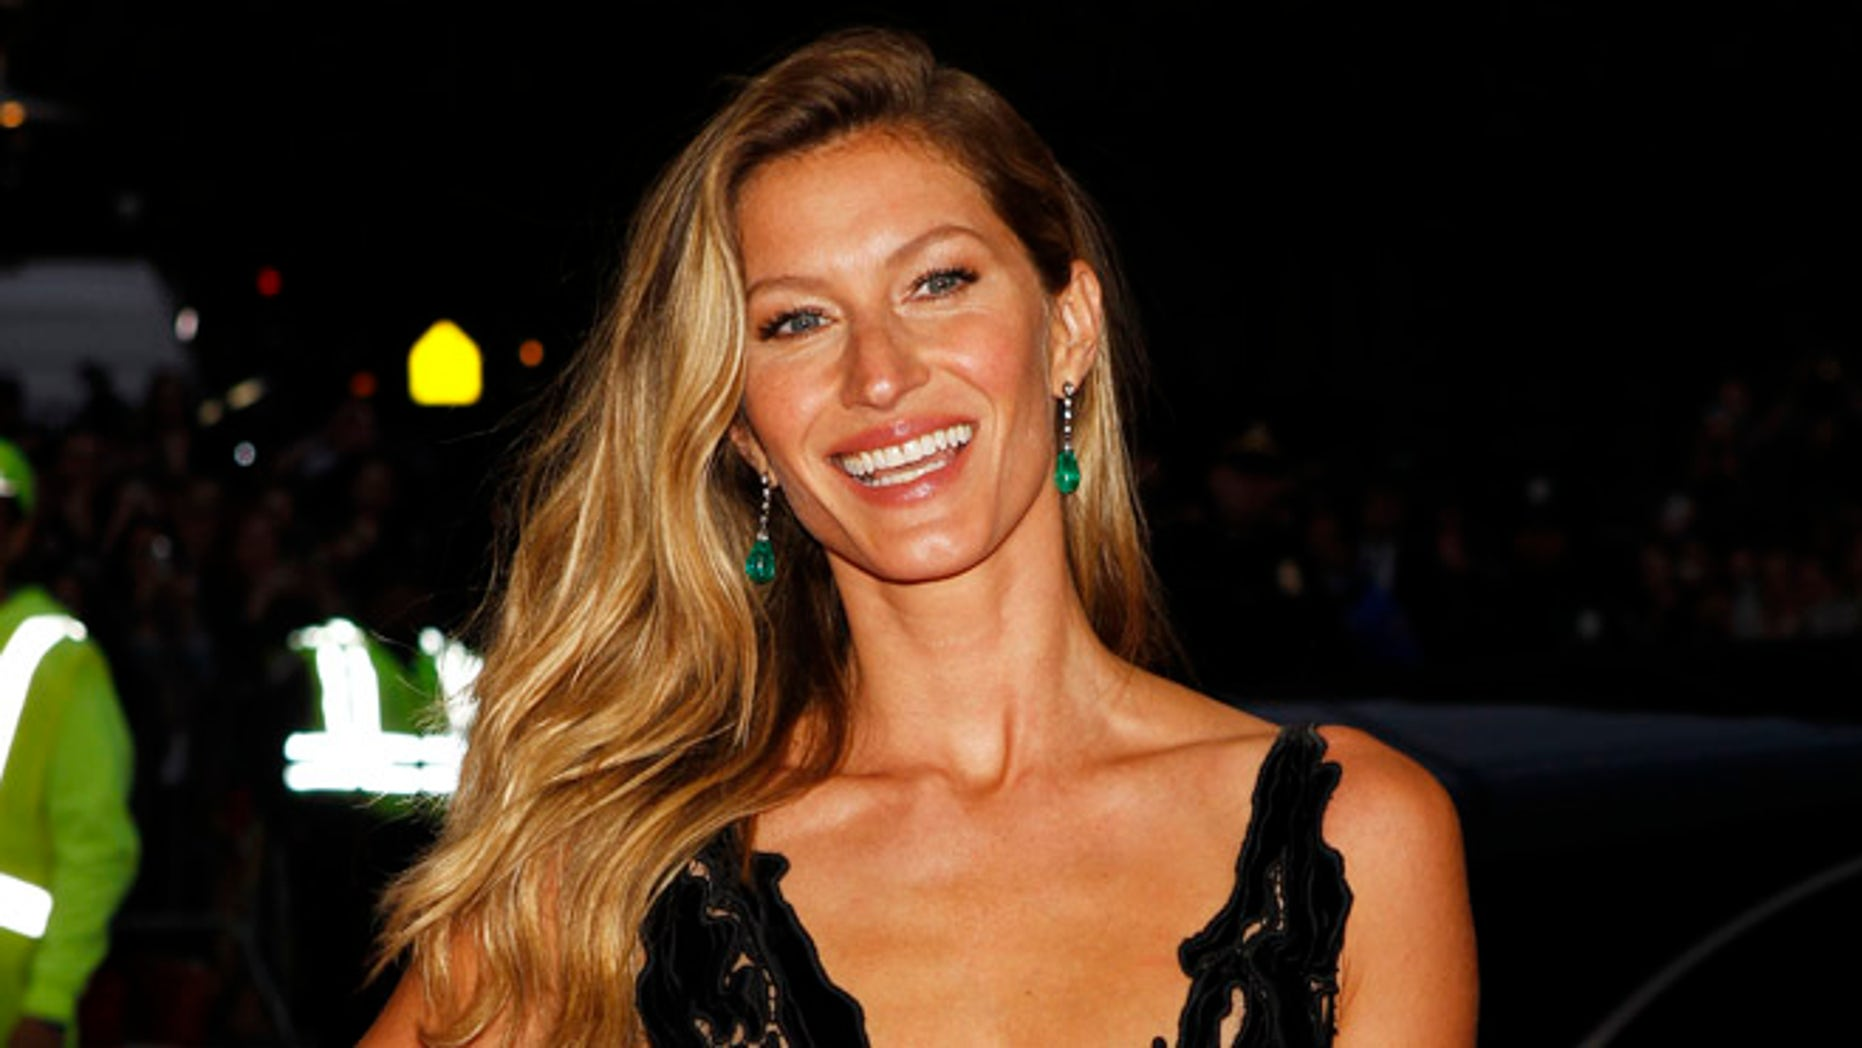 Gisele Bundchen posed in a tiny blue bikini in honor of Earth Day